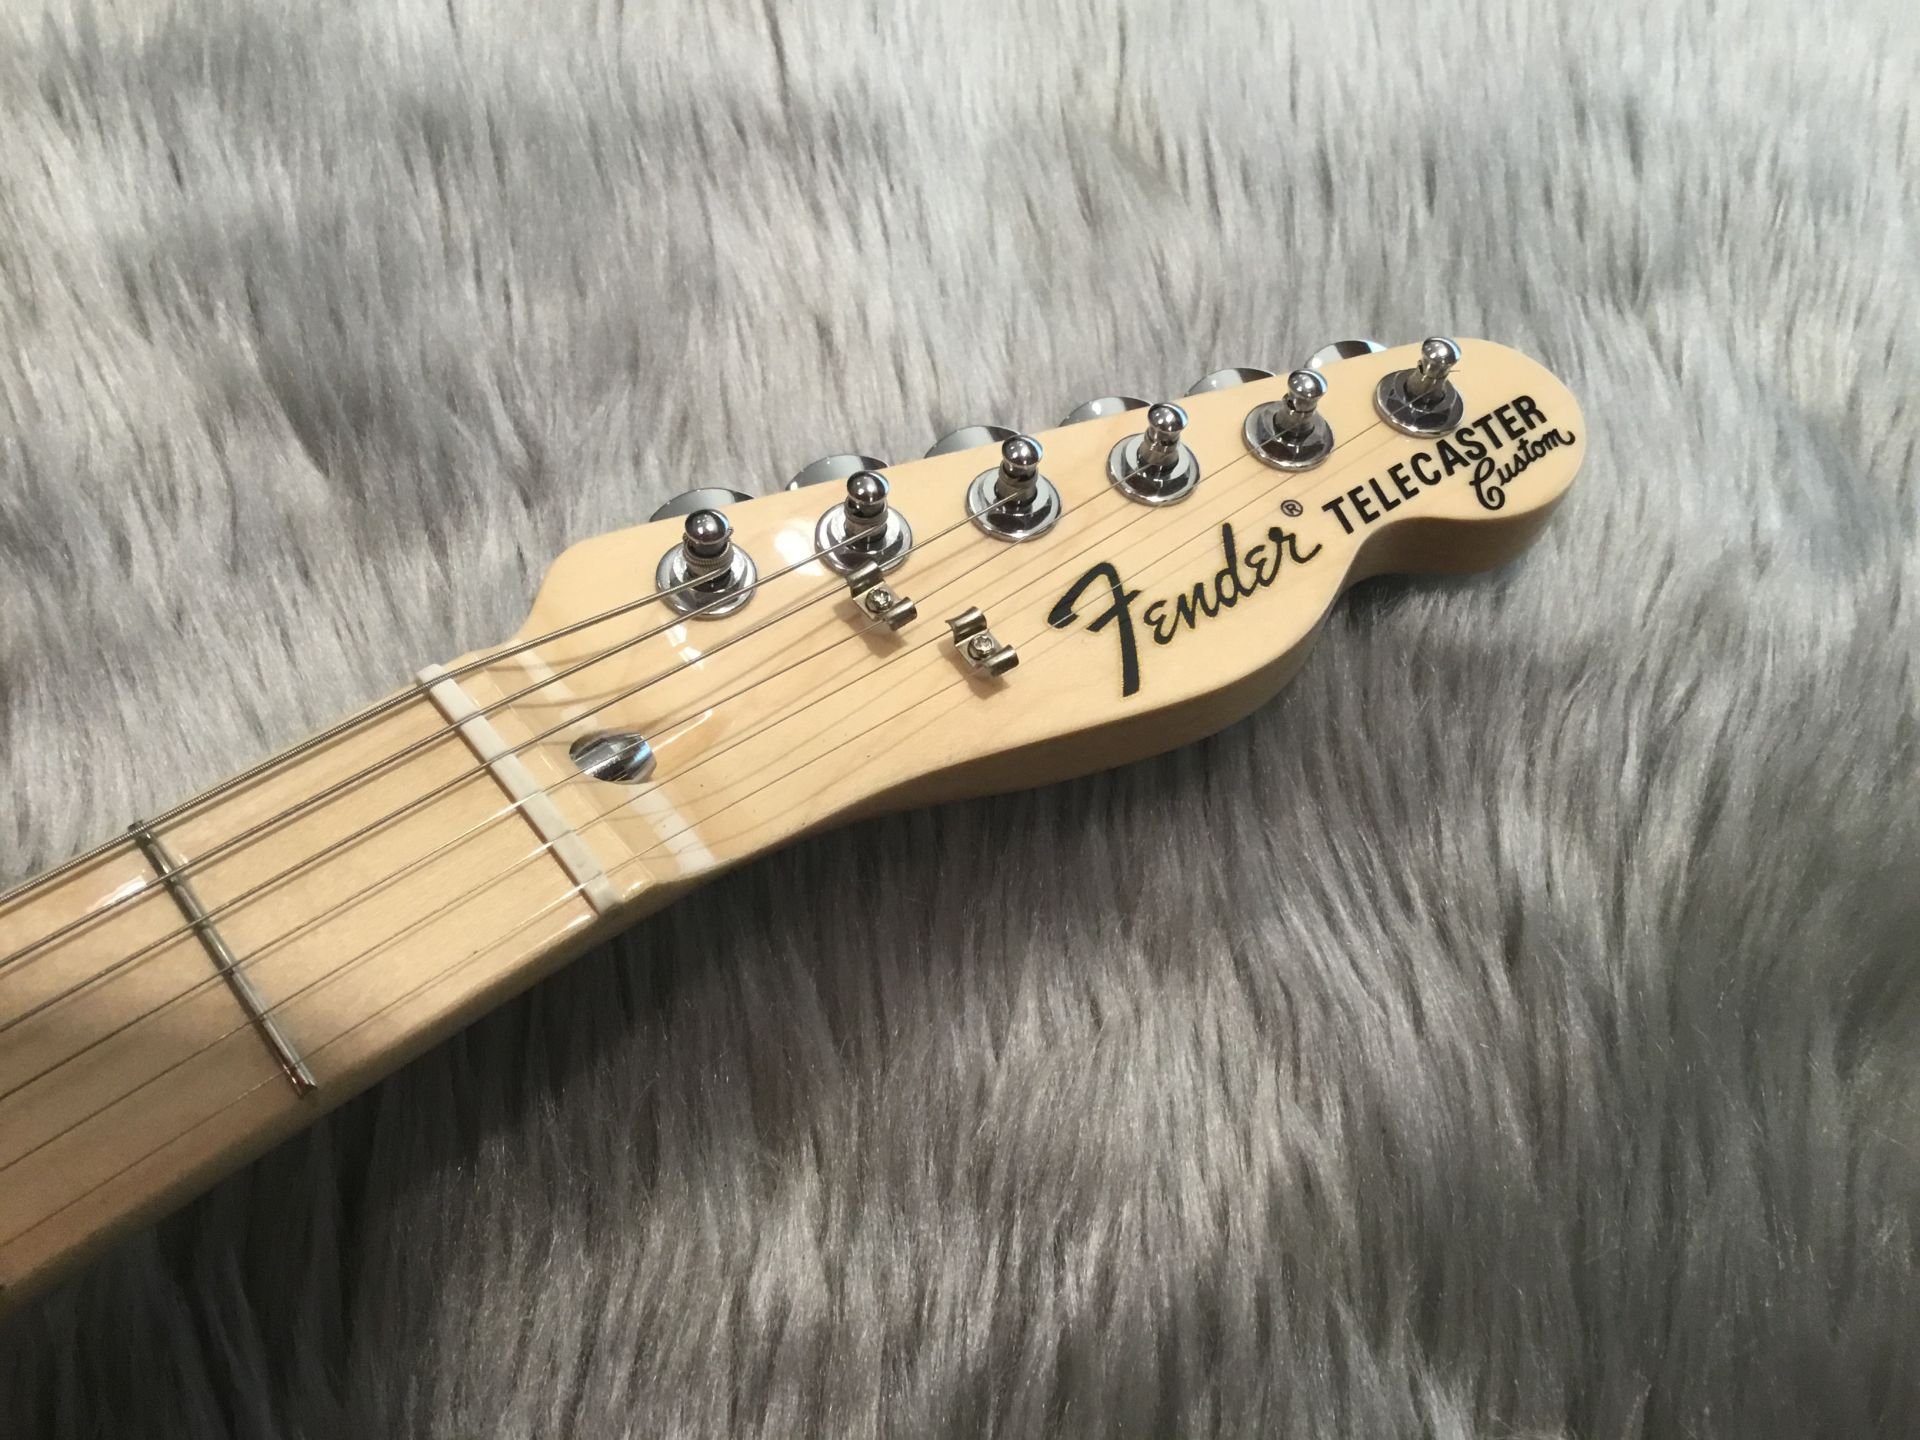 MADE IN JAPAN TRADITIONAL 70S TELECASTER CUSTOMのヘッド画像